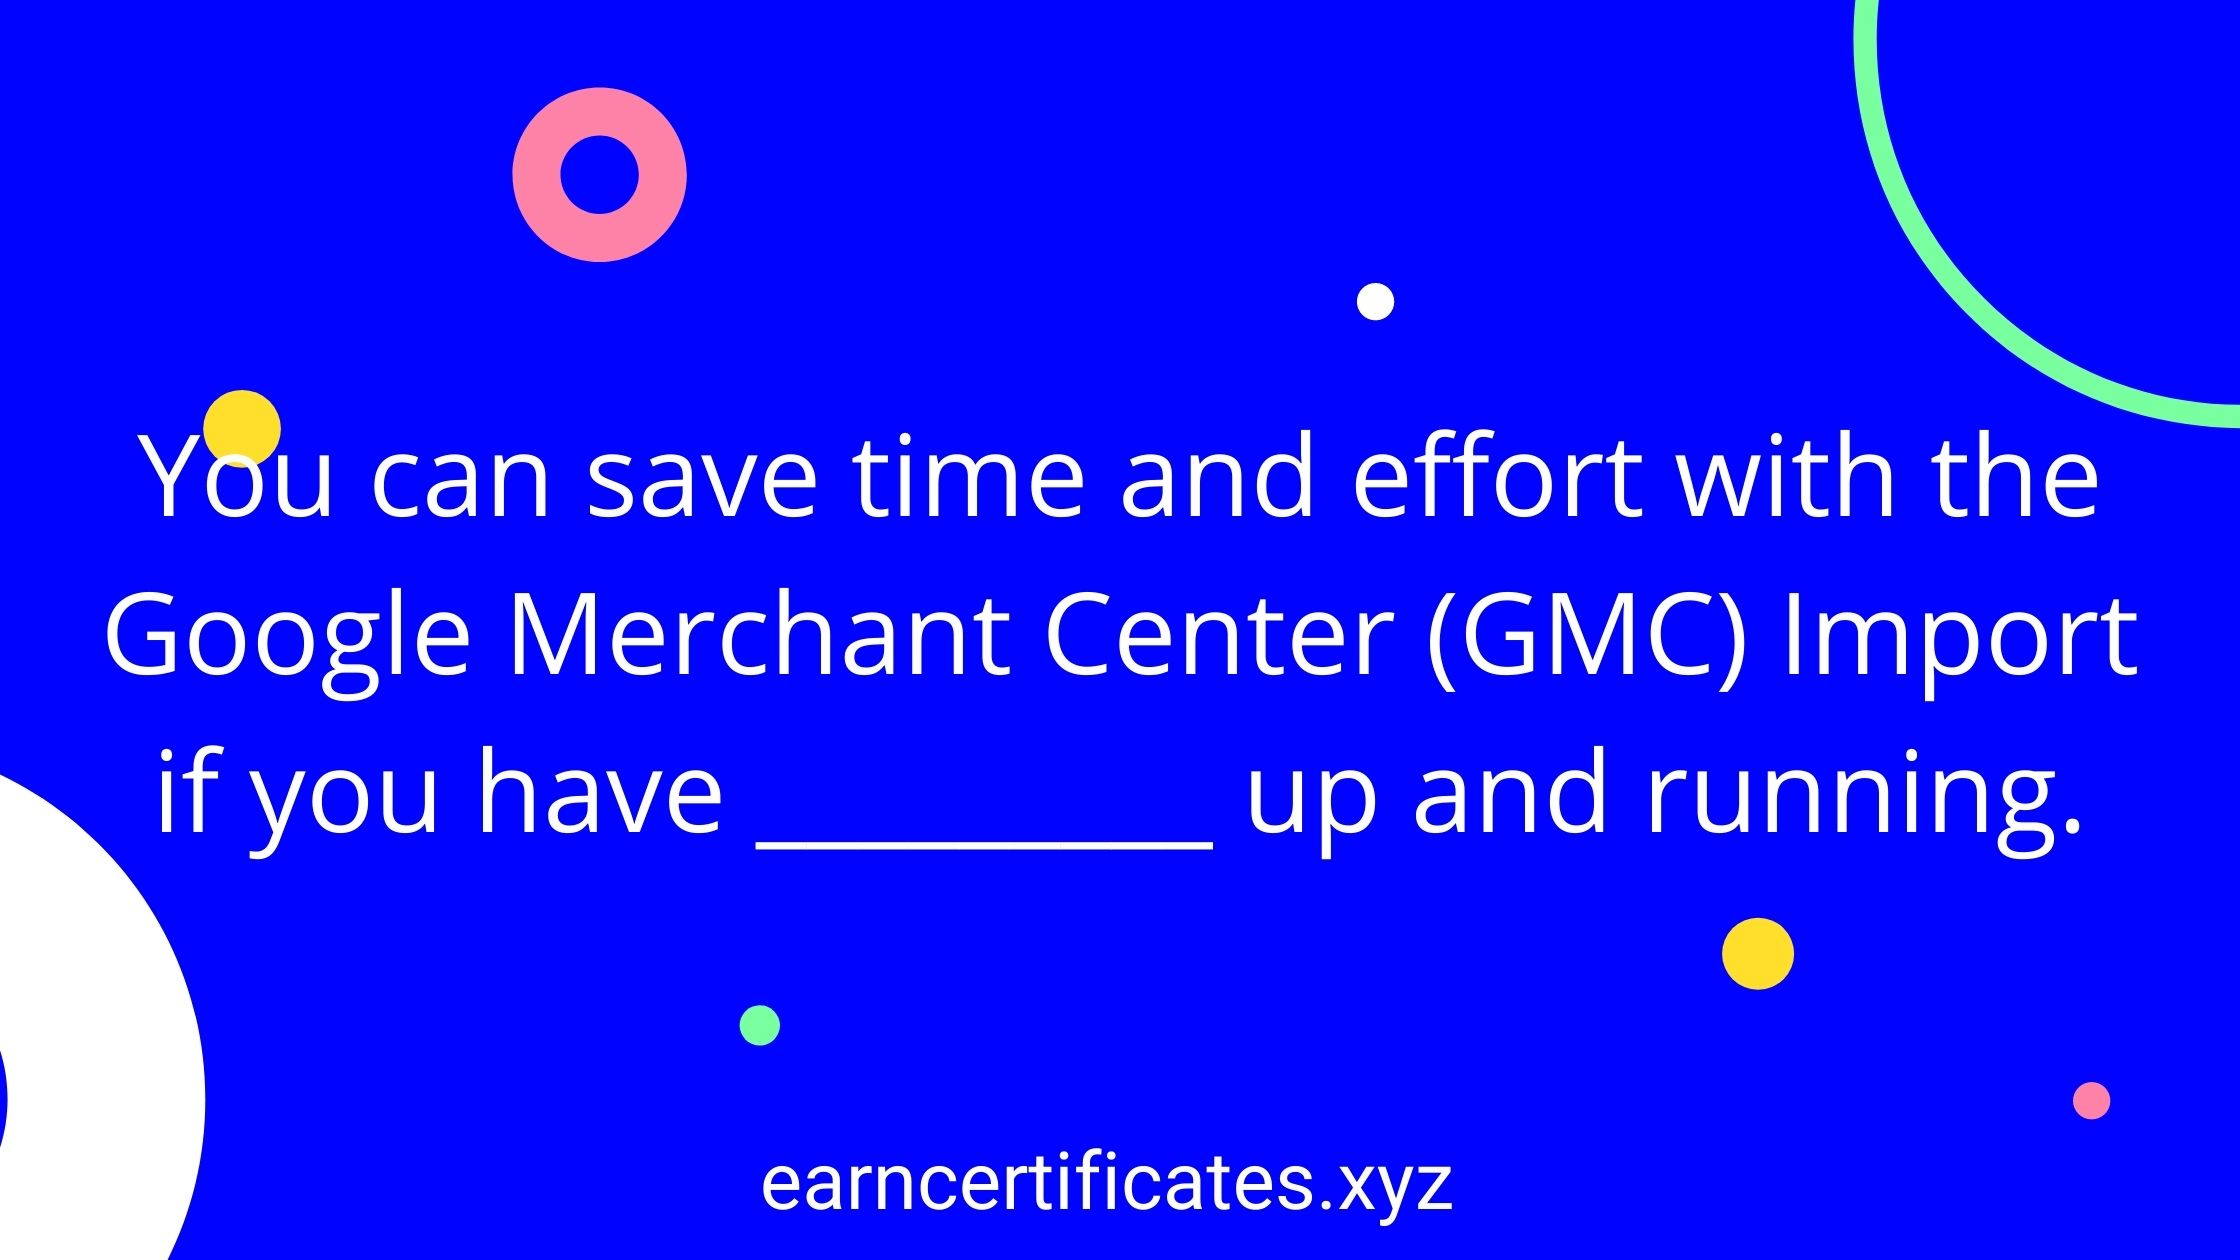 You can save time and effort with the Google Merchant Center (GMC) Import if you have _________ up and running.